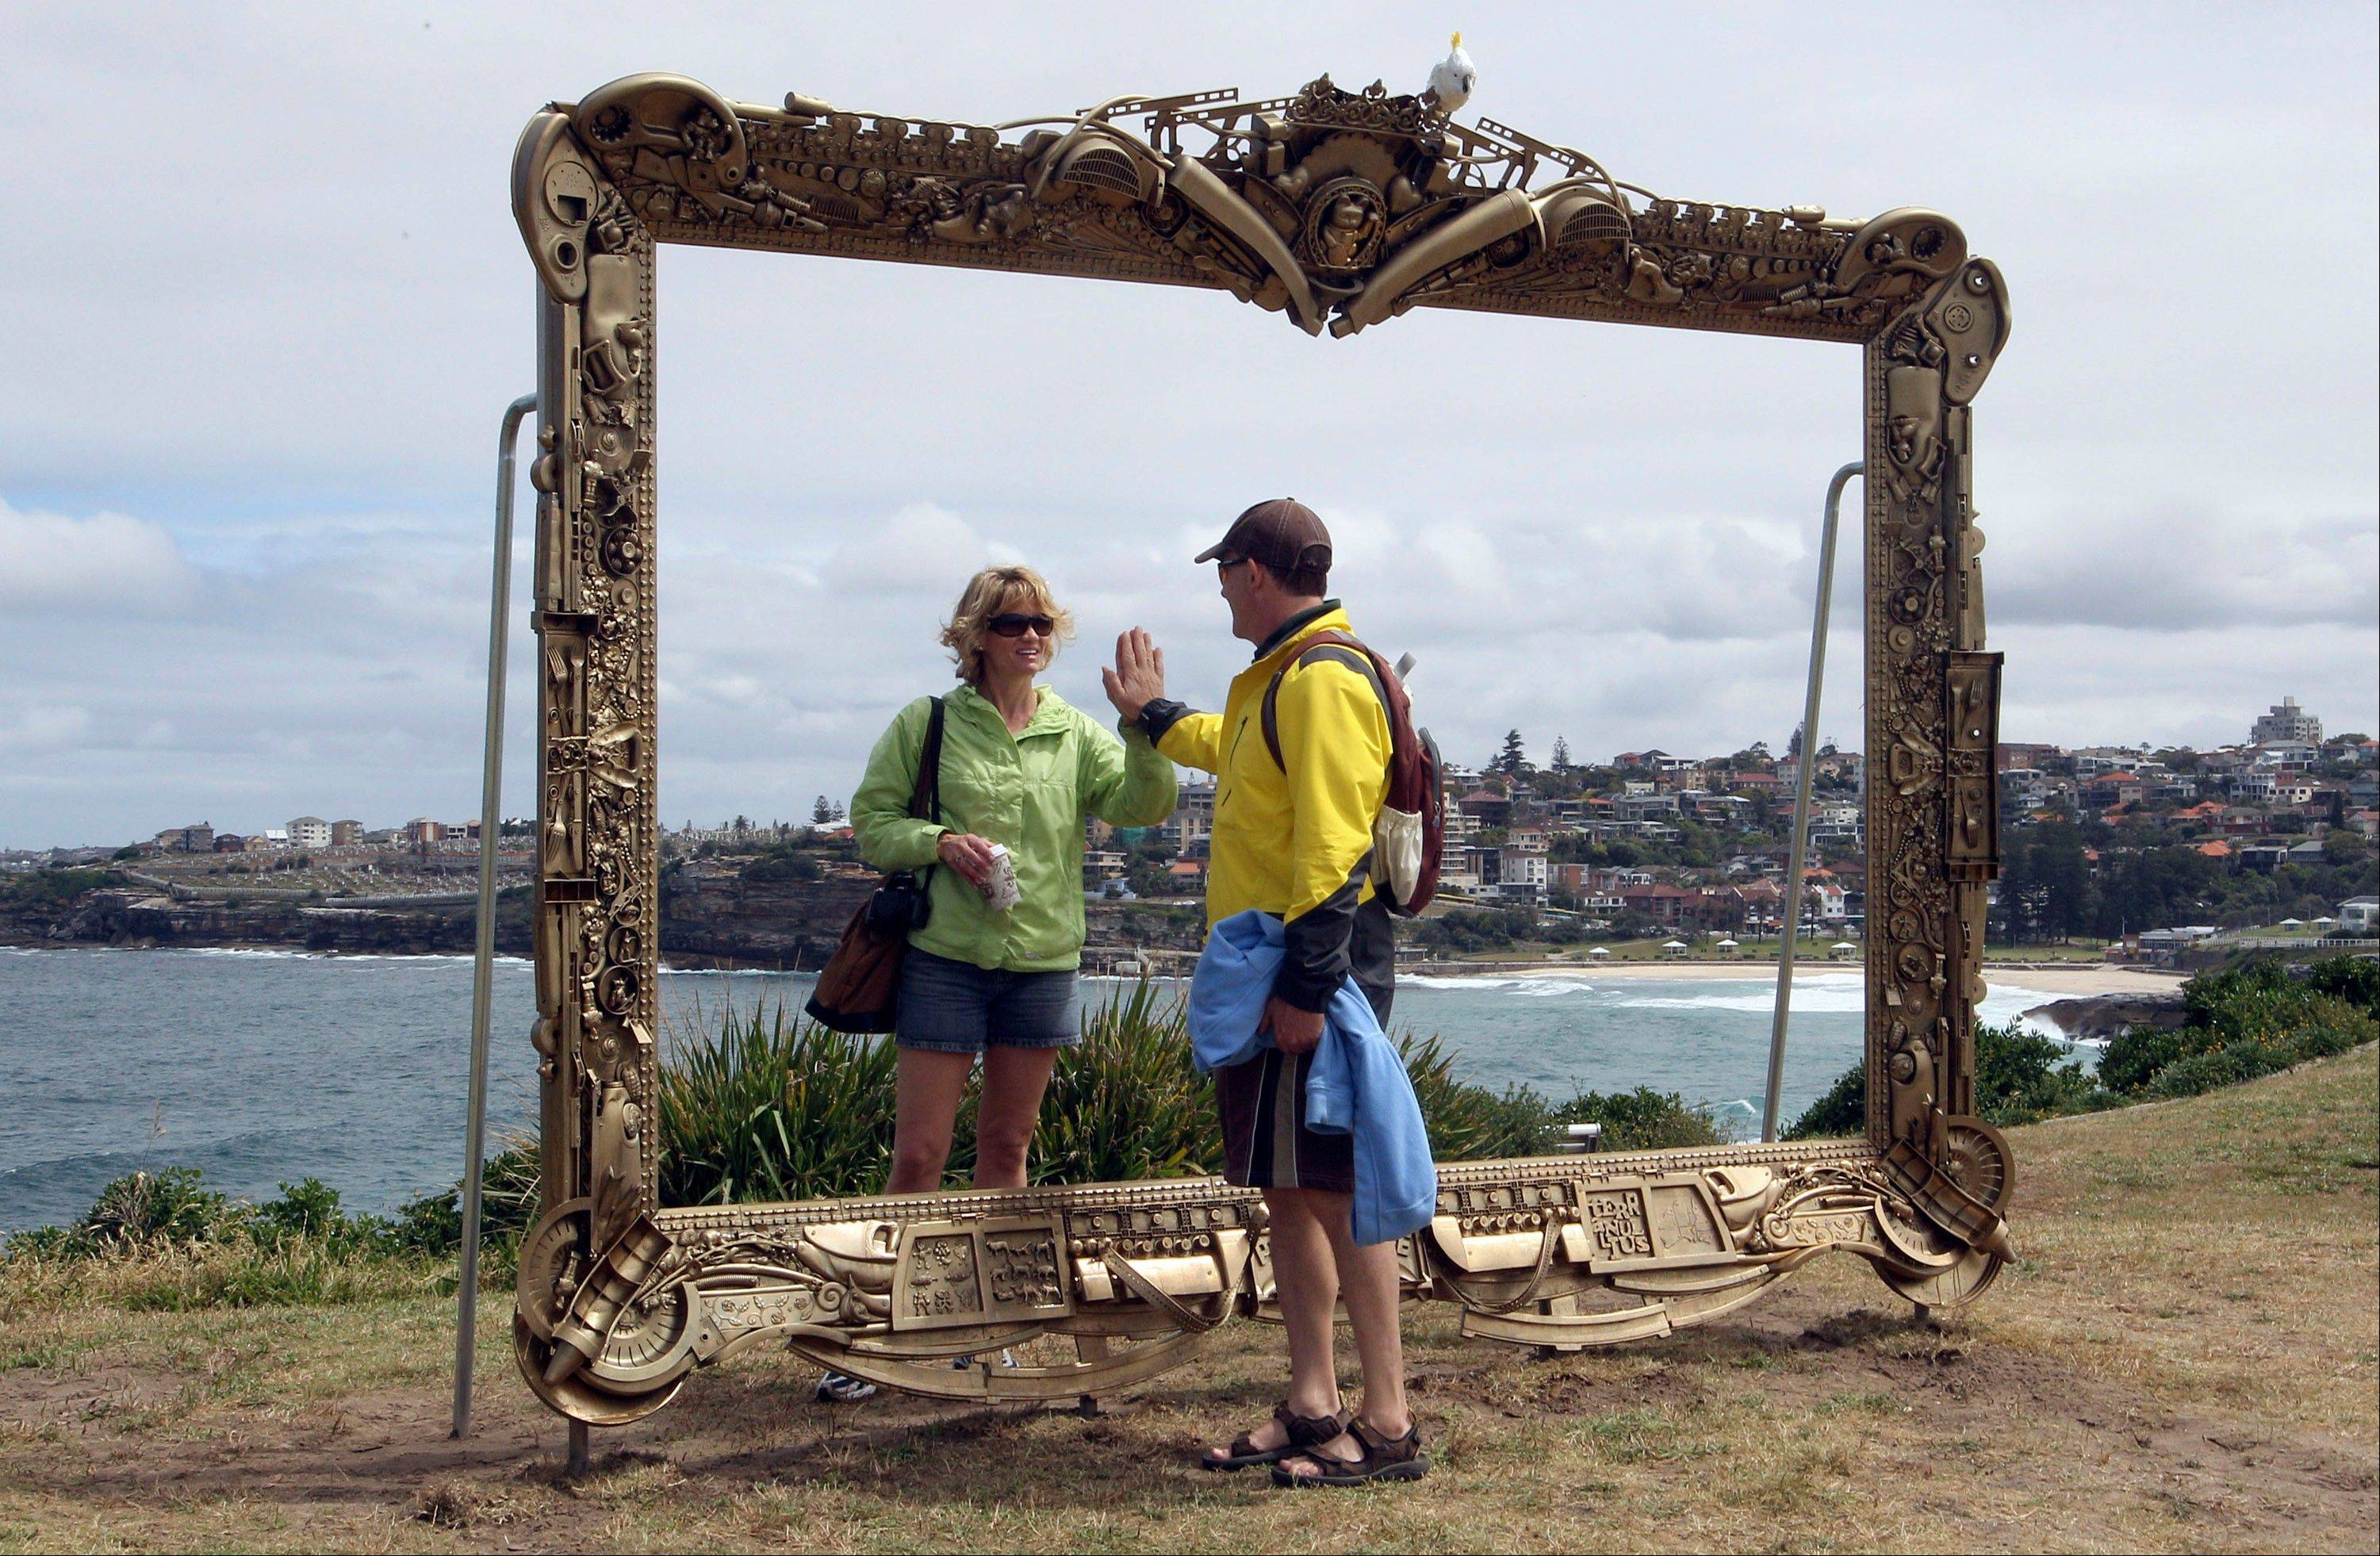 A couple pretend to be a mirror image of each other in Jane Gilling's sculpture, Provenance at Sculptures By The Sea in Sydney. Every November, the popular exhibition features large art installations placed along the path and beaches, providing a free seaside art show.